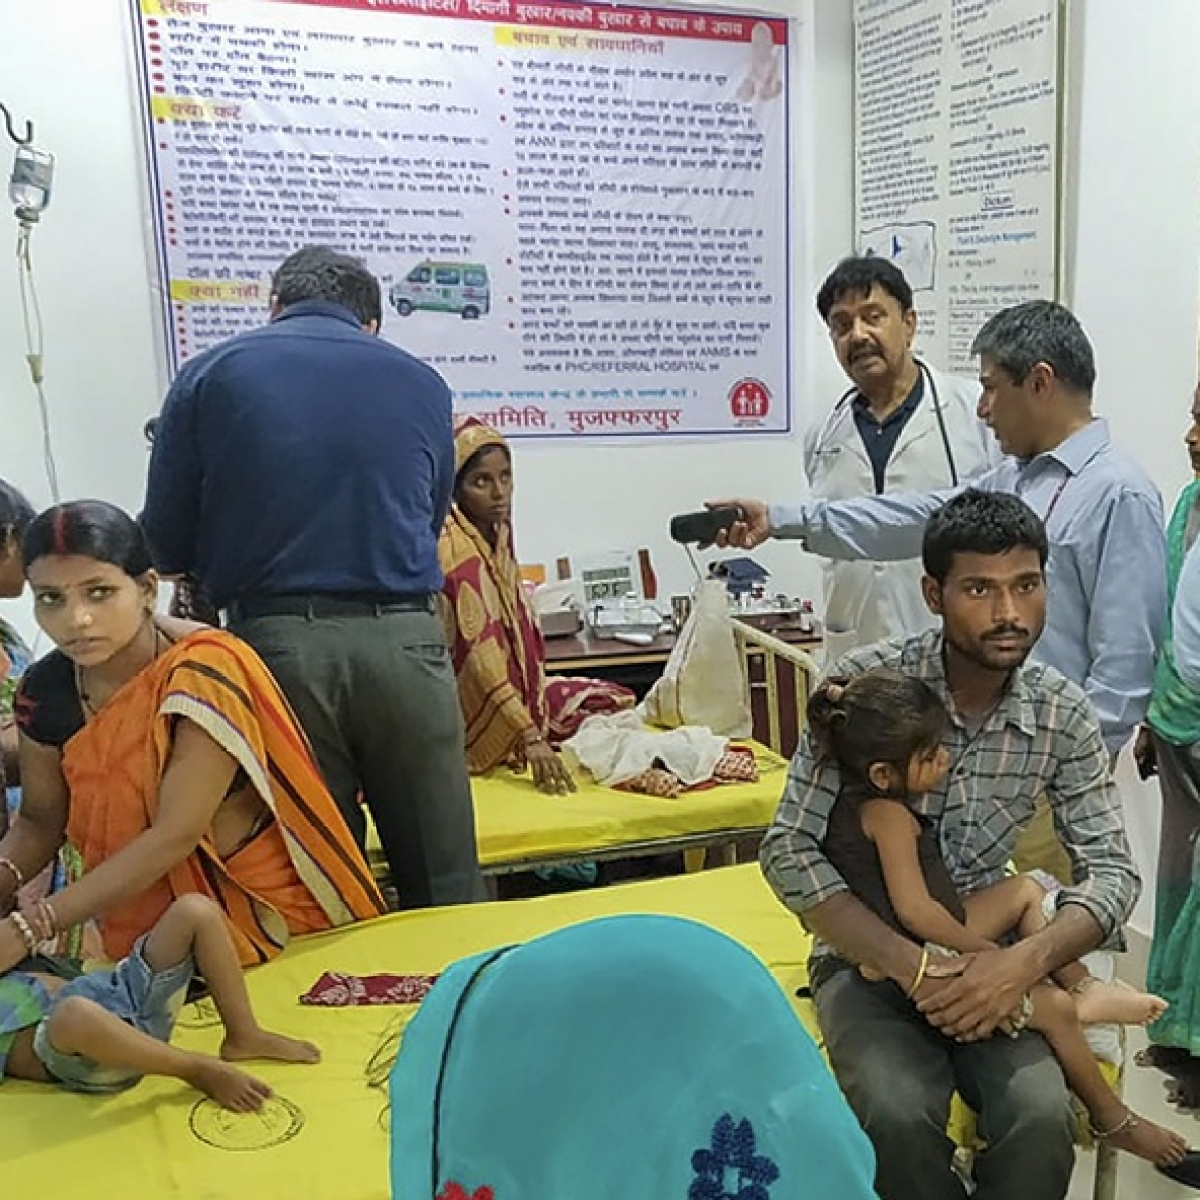 Bihar: Doctors' leave cancelled, new ward set up to tackle cases of Encephalitis, says ANMMC Medical Superintendent